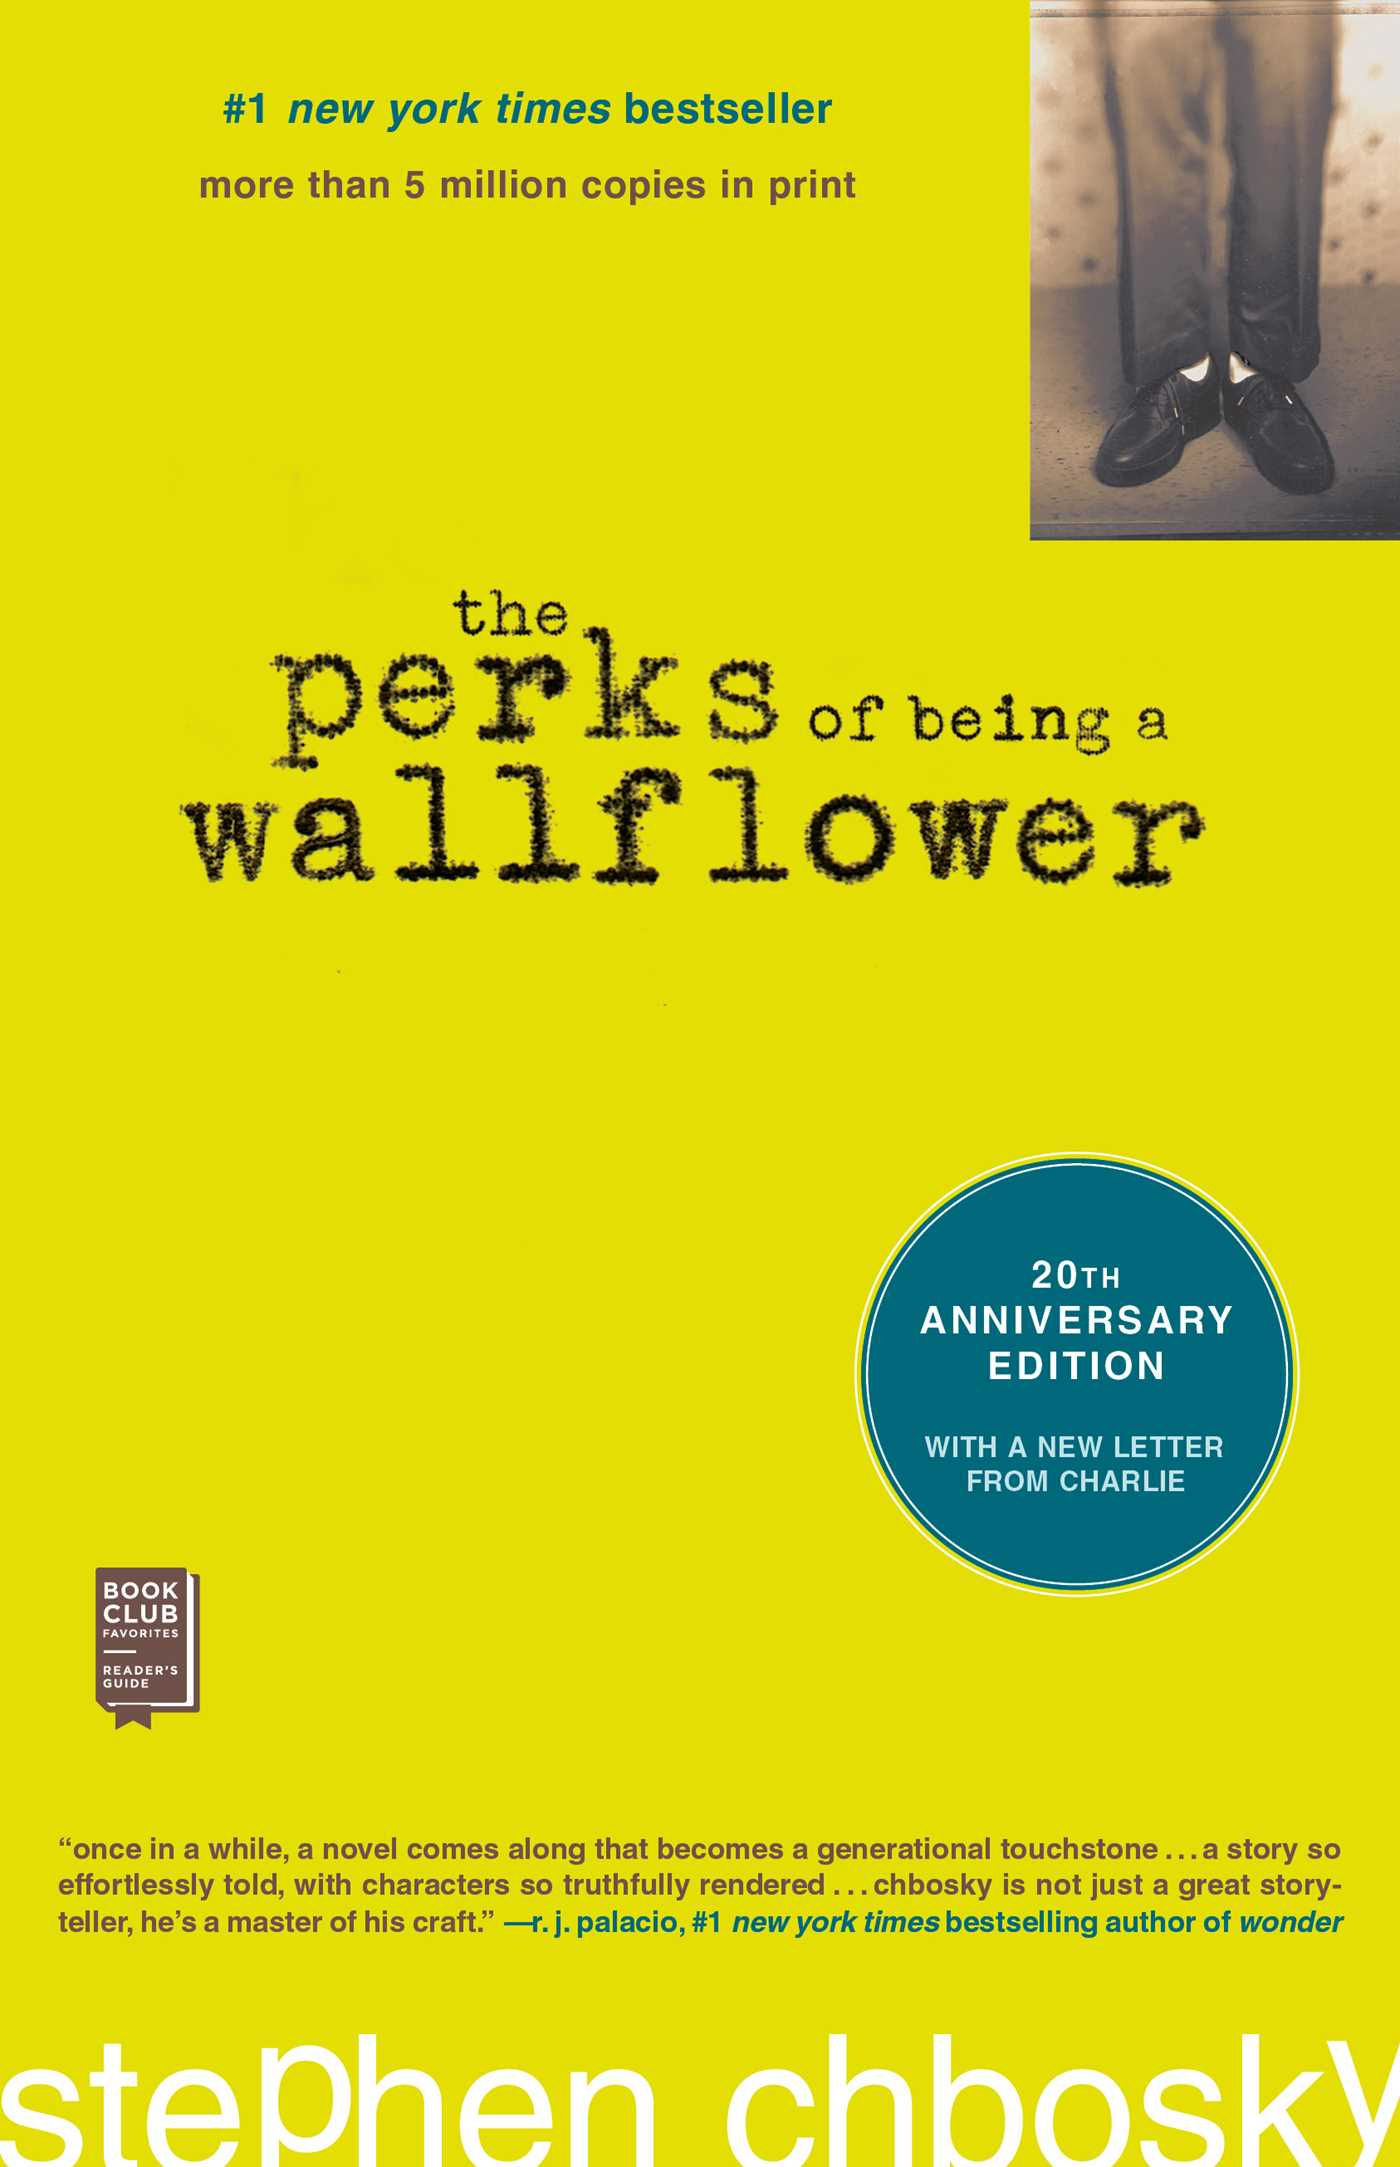 The Perks of Being a Wallflower - Banned Books to Read